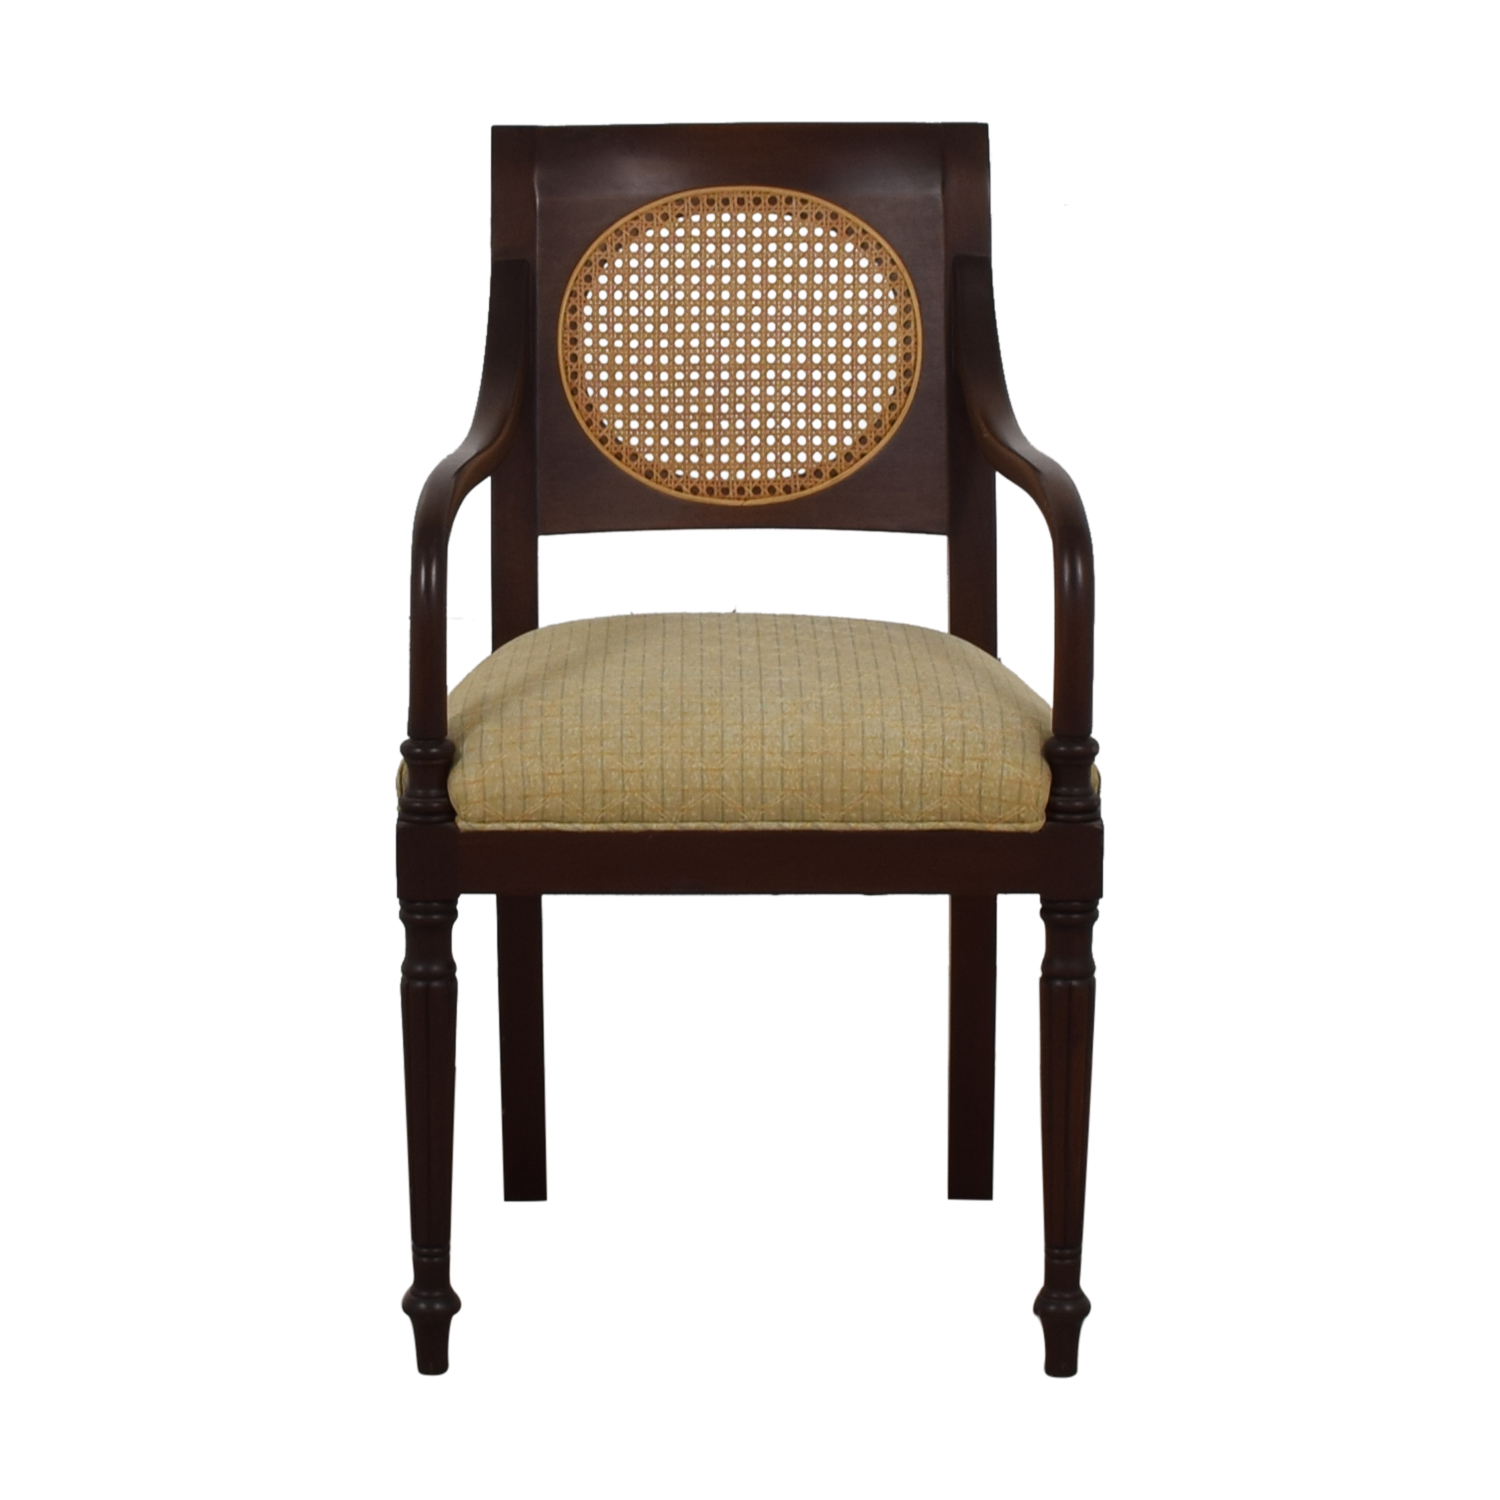 Furniture Masters Furniture Masters Mid Century Accent Chair on sale